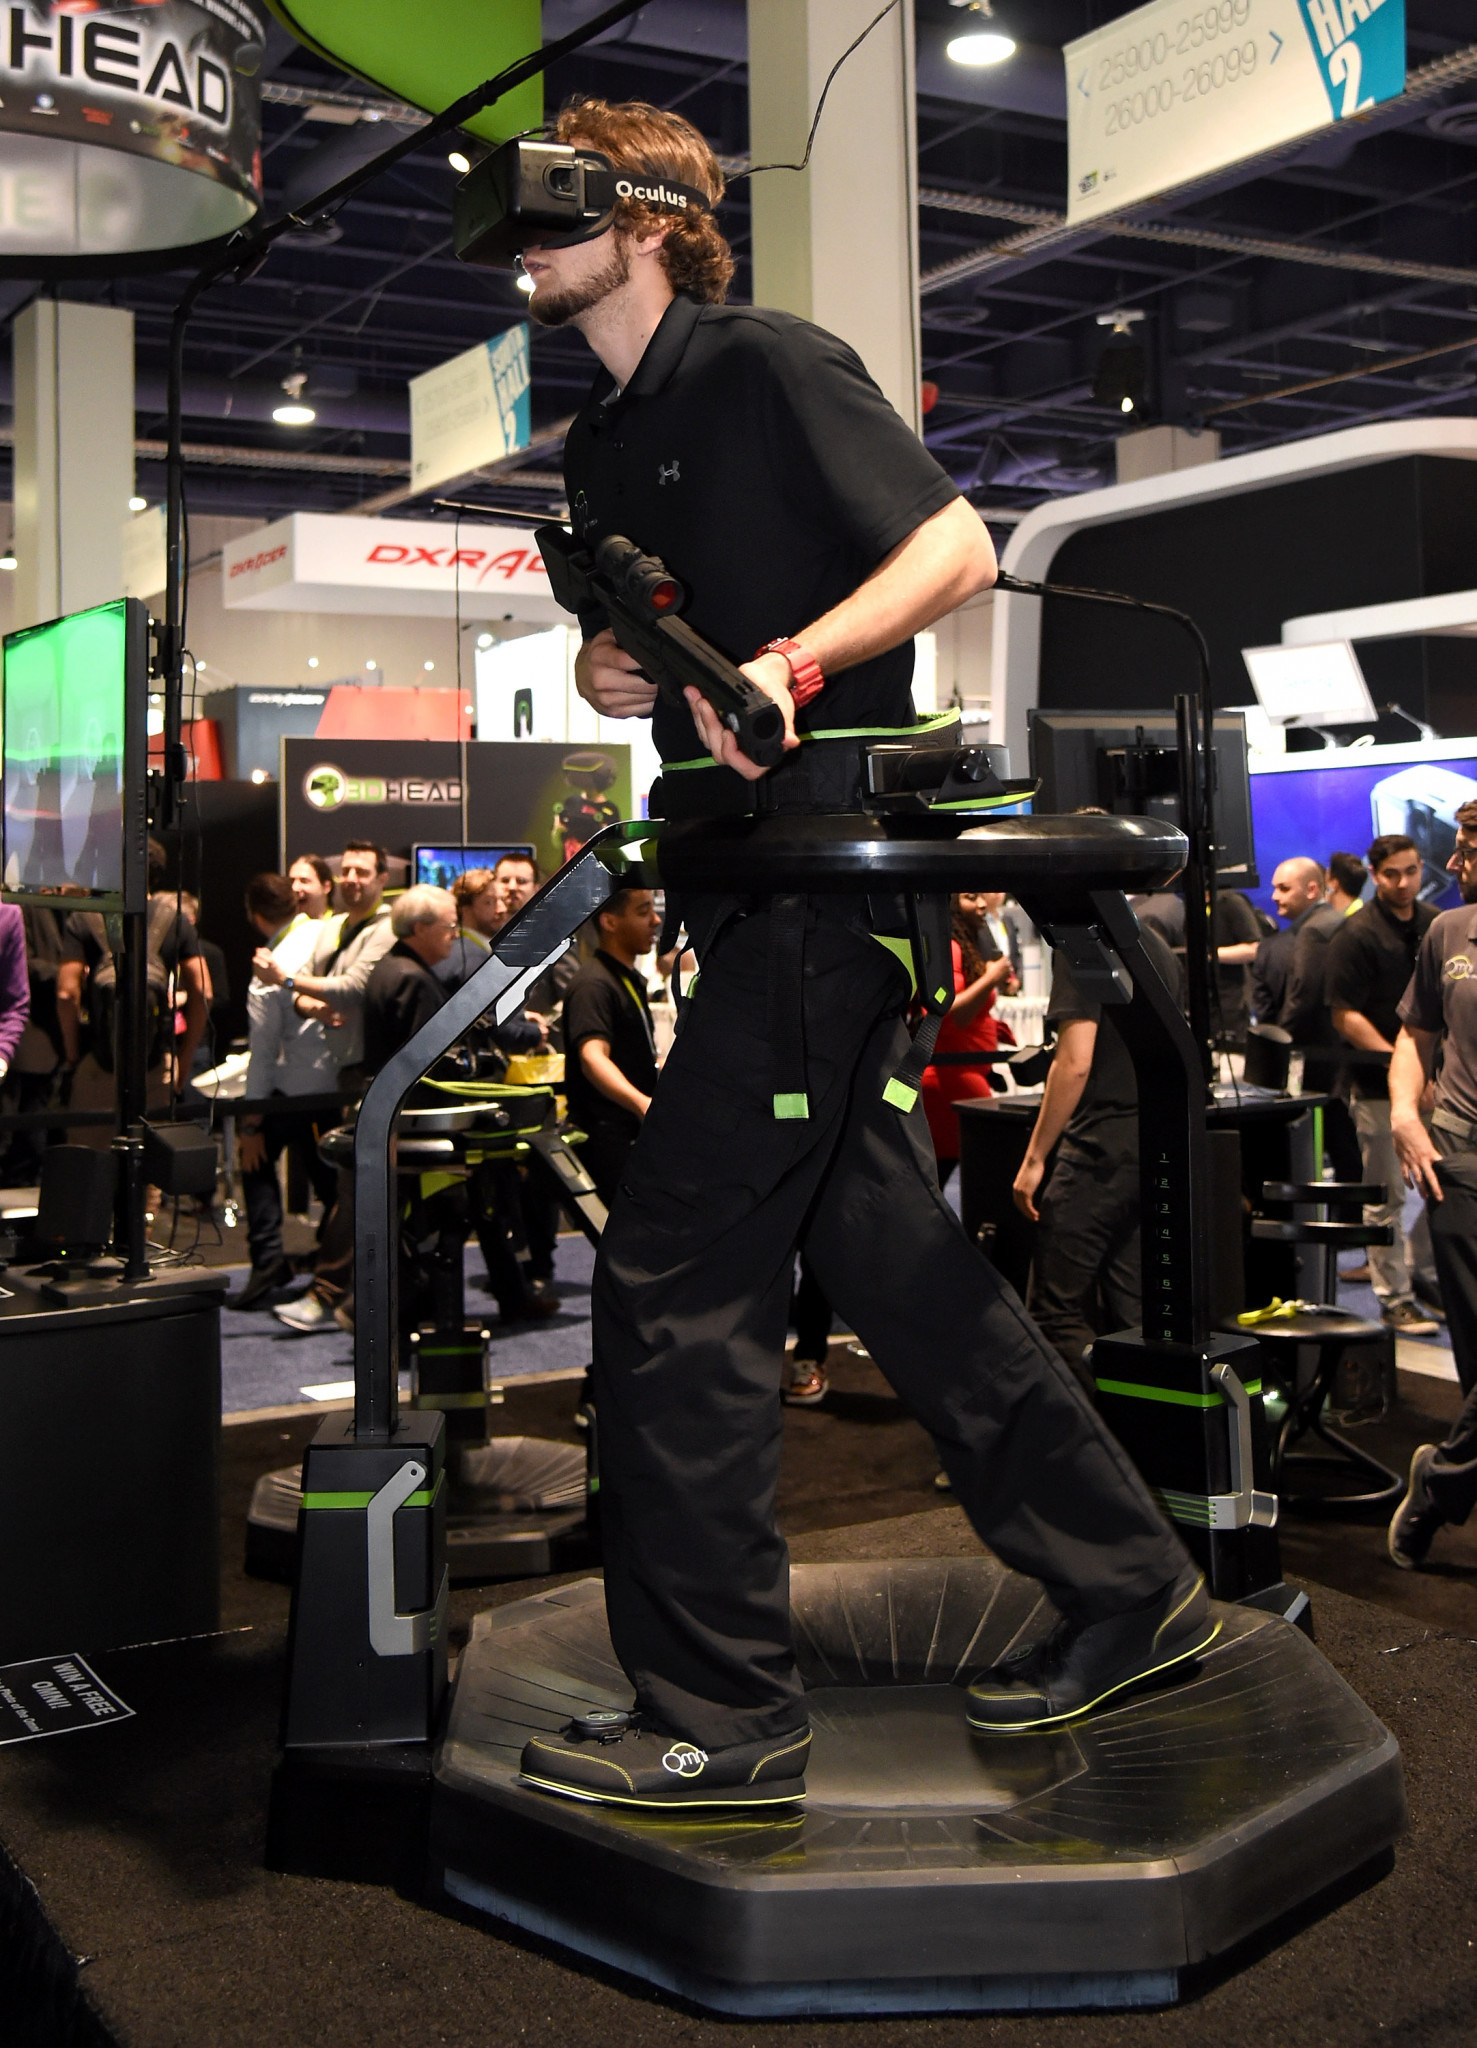 Omni directional treadmills are already available, at a price ©Getty Images